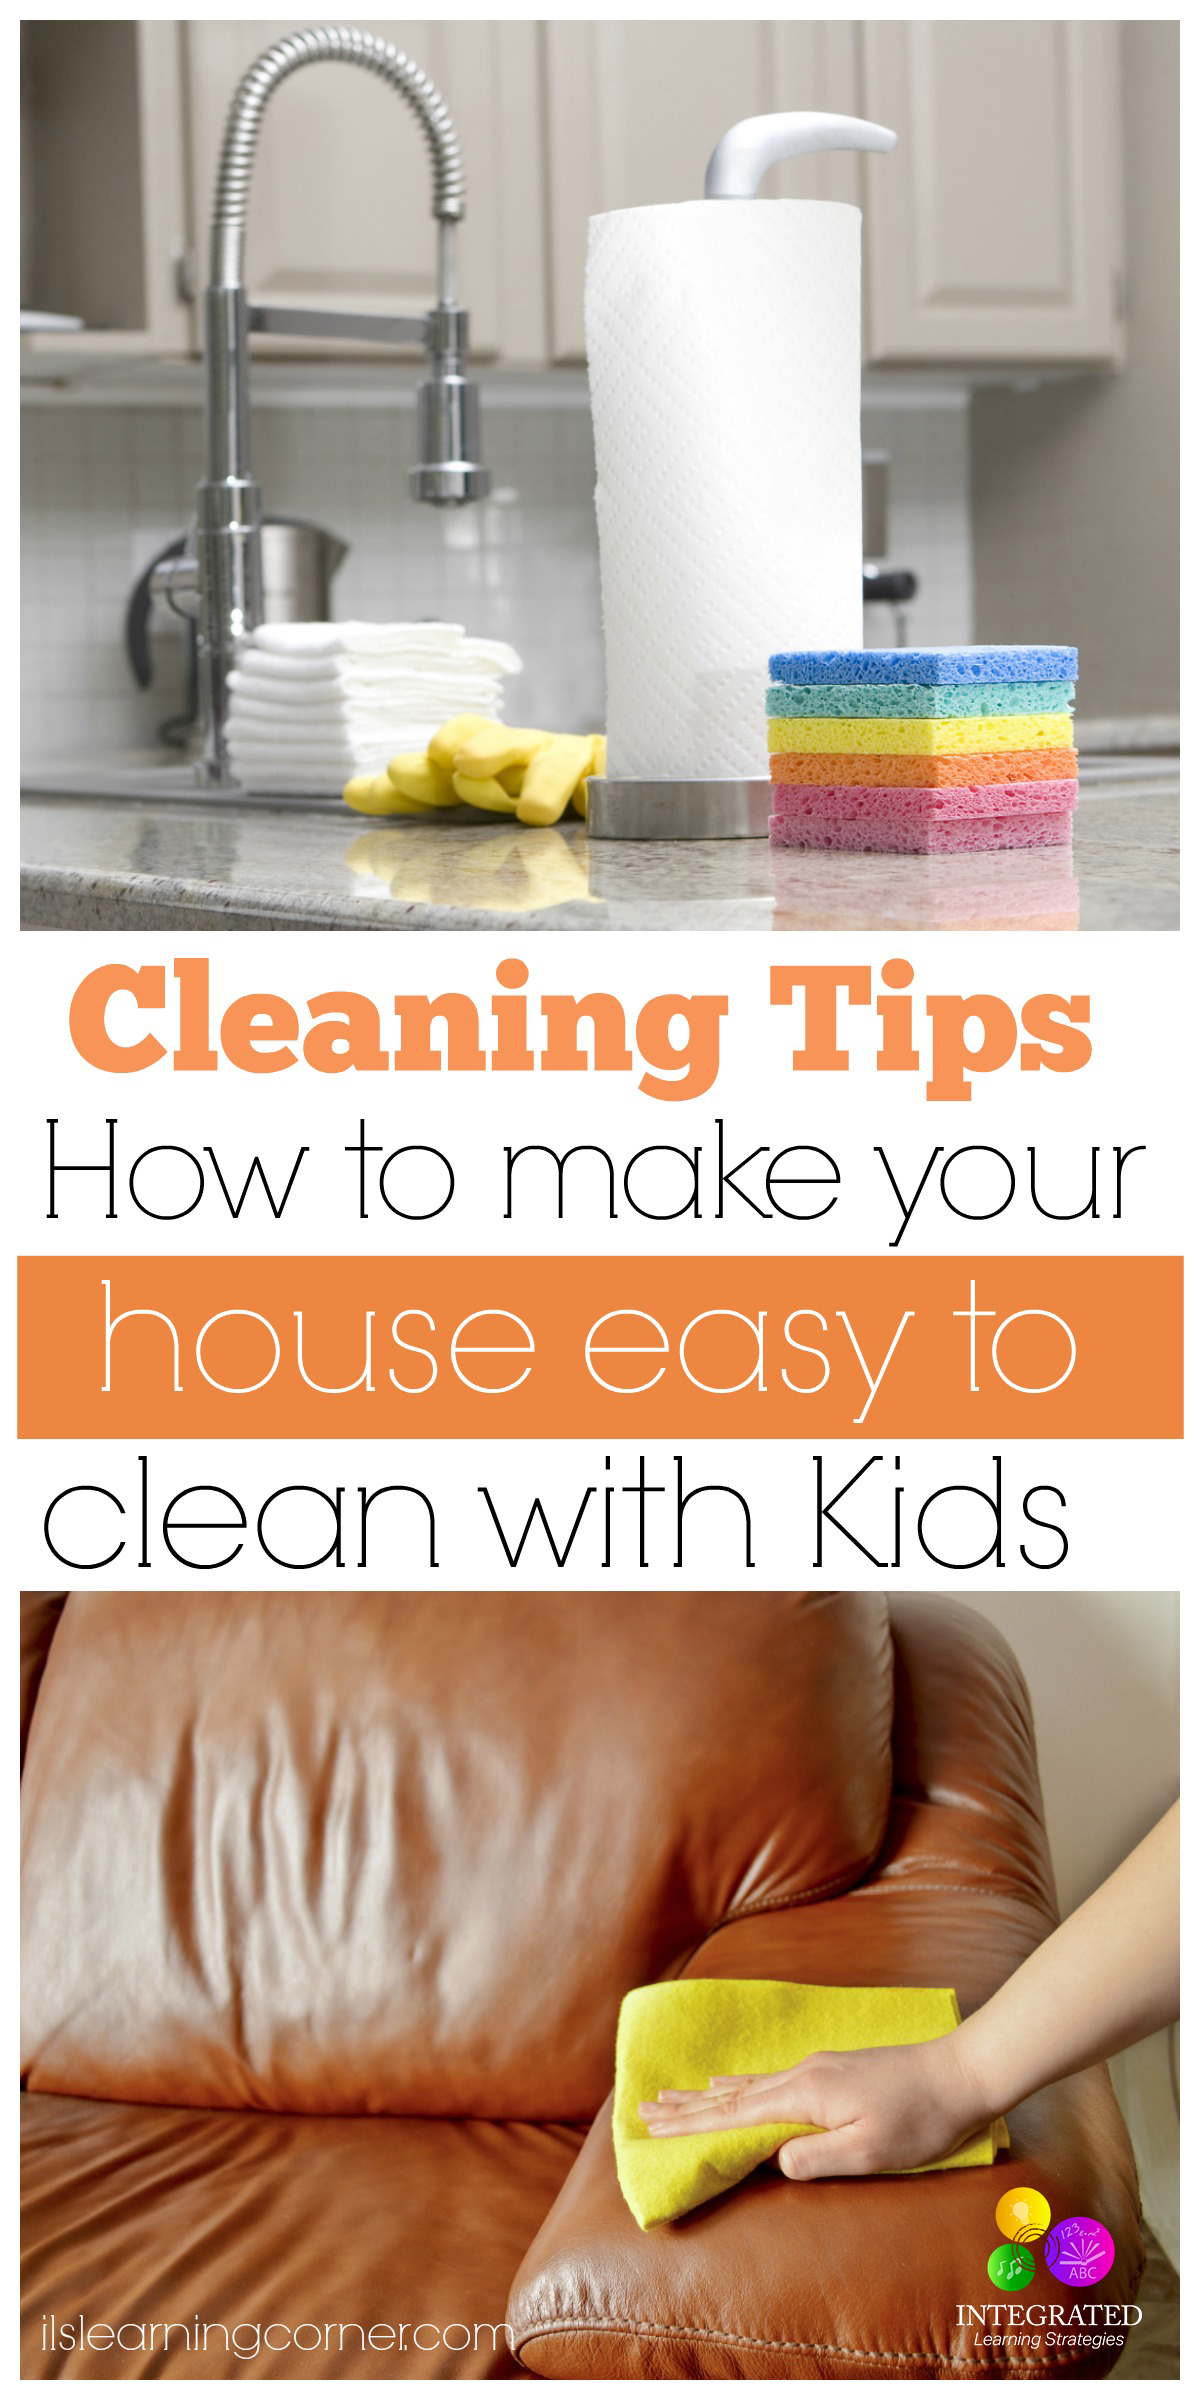 Cleaning Tips How To Make Your House Easier To Clean When